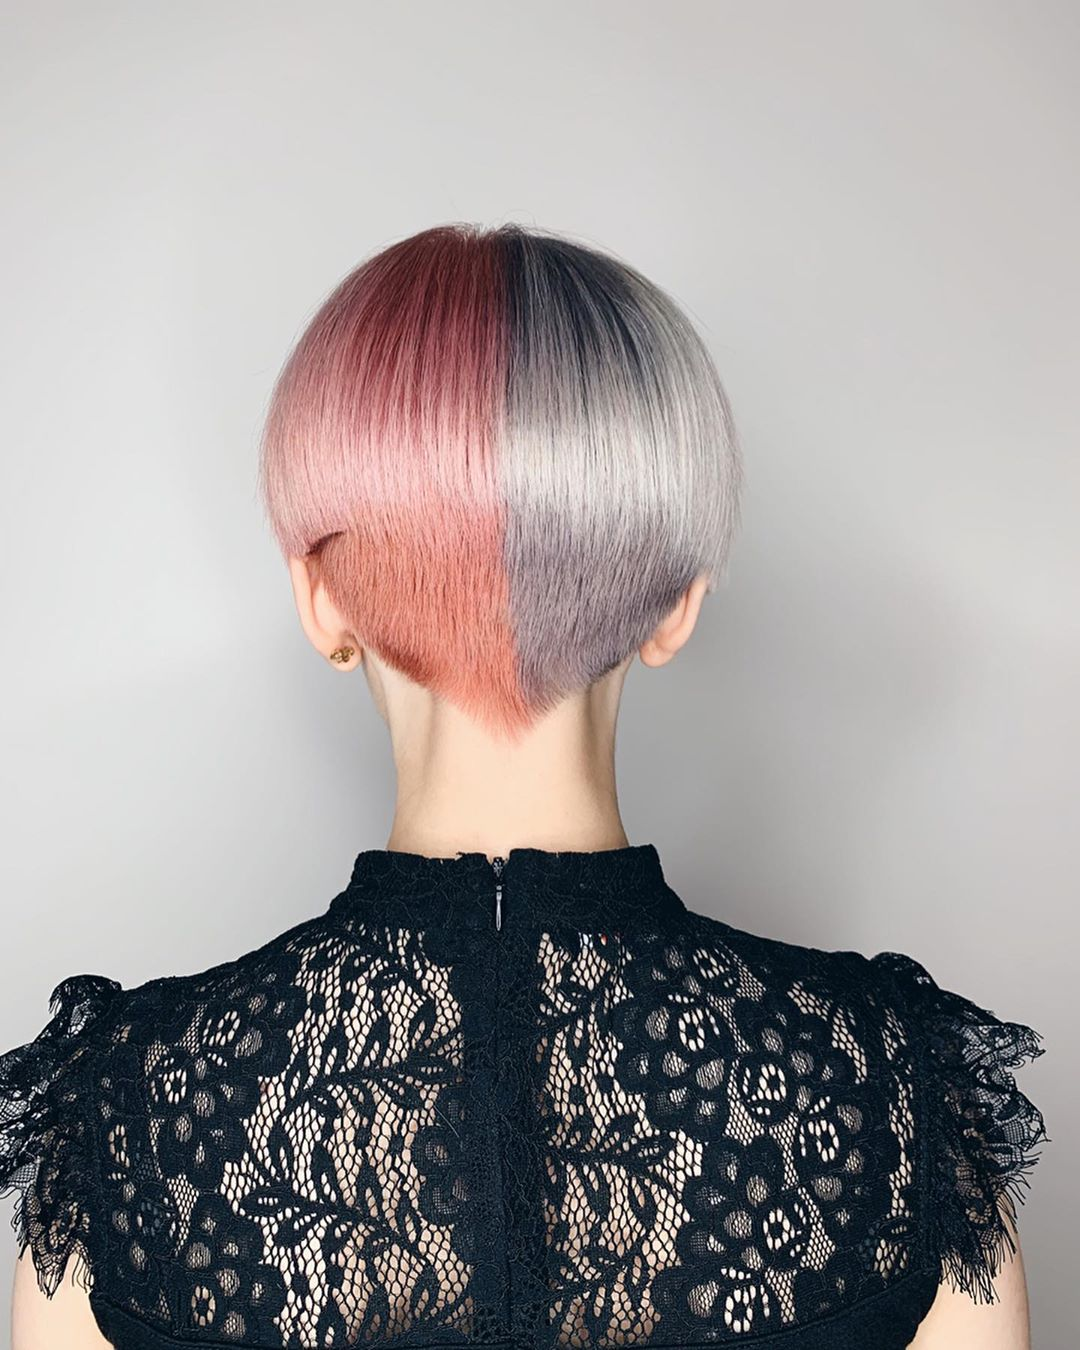 Chic Short Hairstyle with Color - Women Pixie Hairstyles & Haircuts 2021